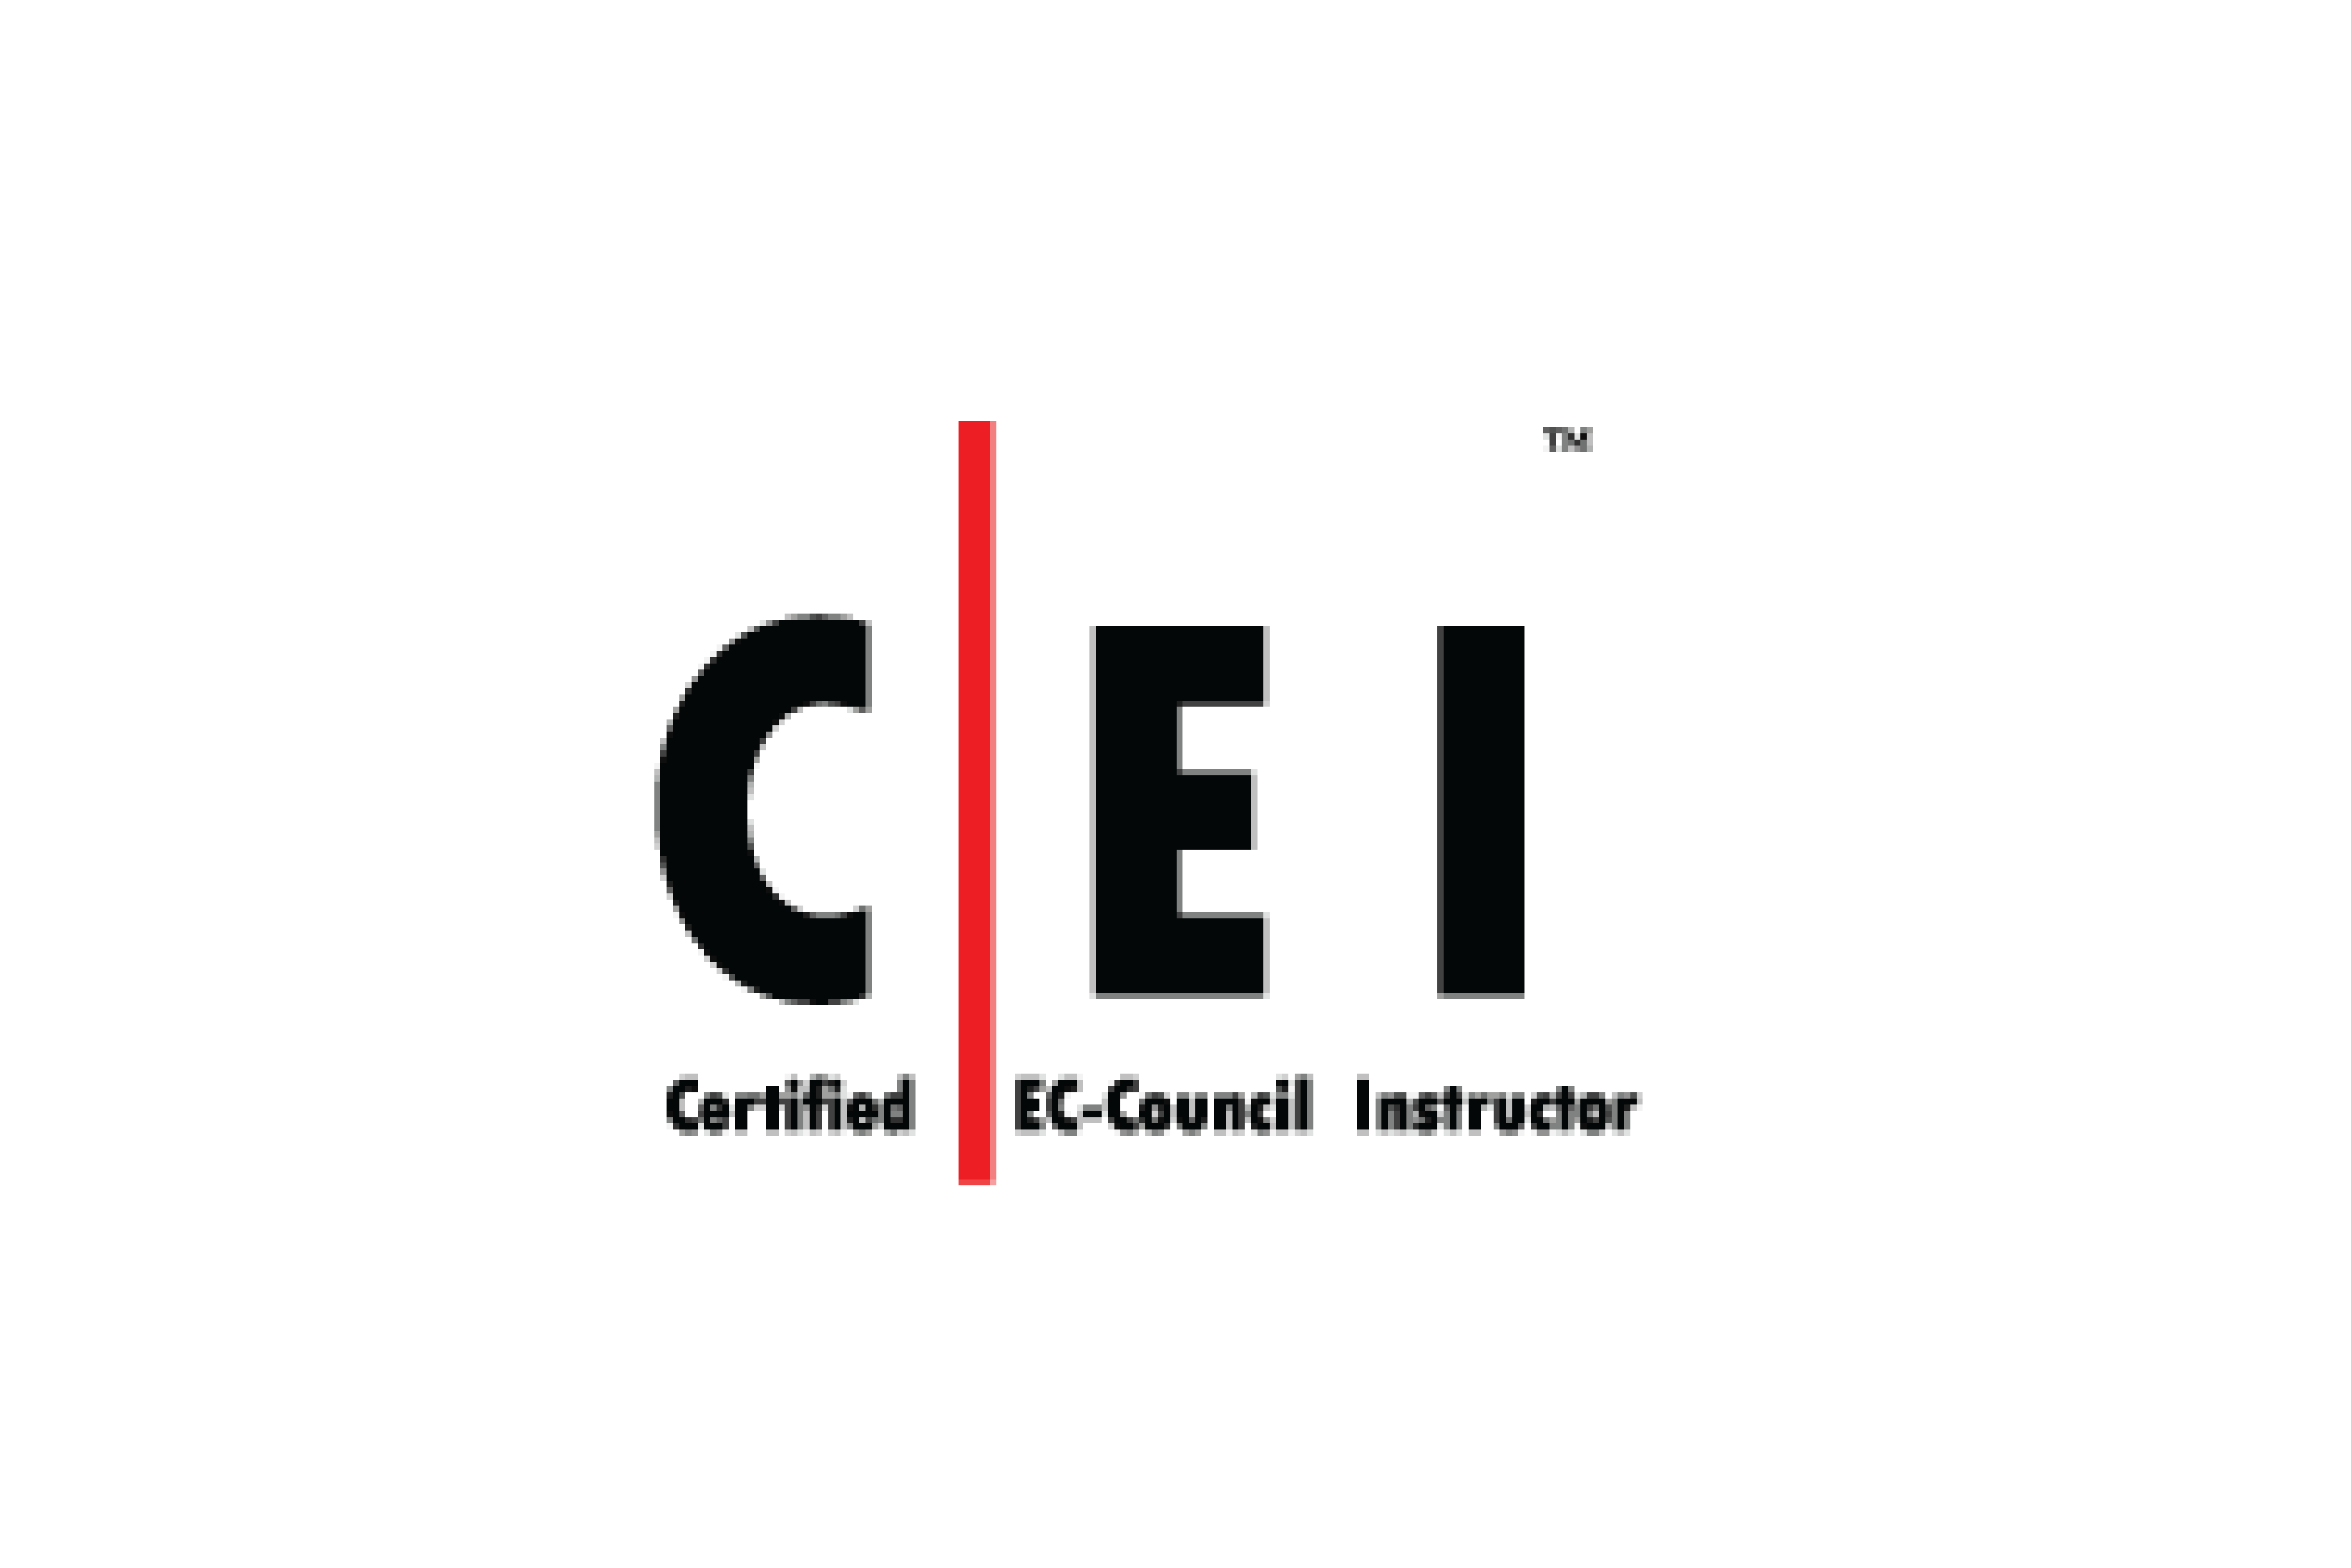 CEI - Certified EC-Council Instructor